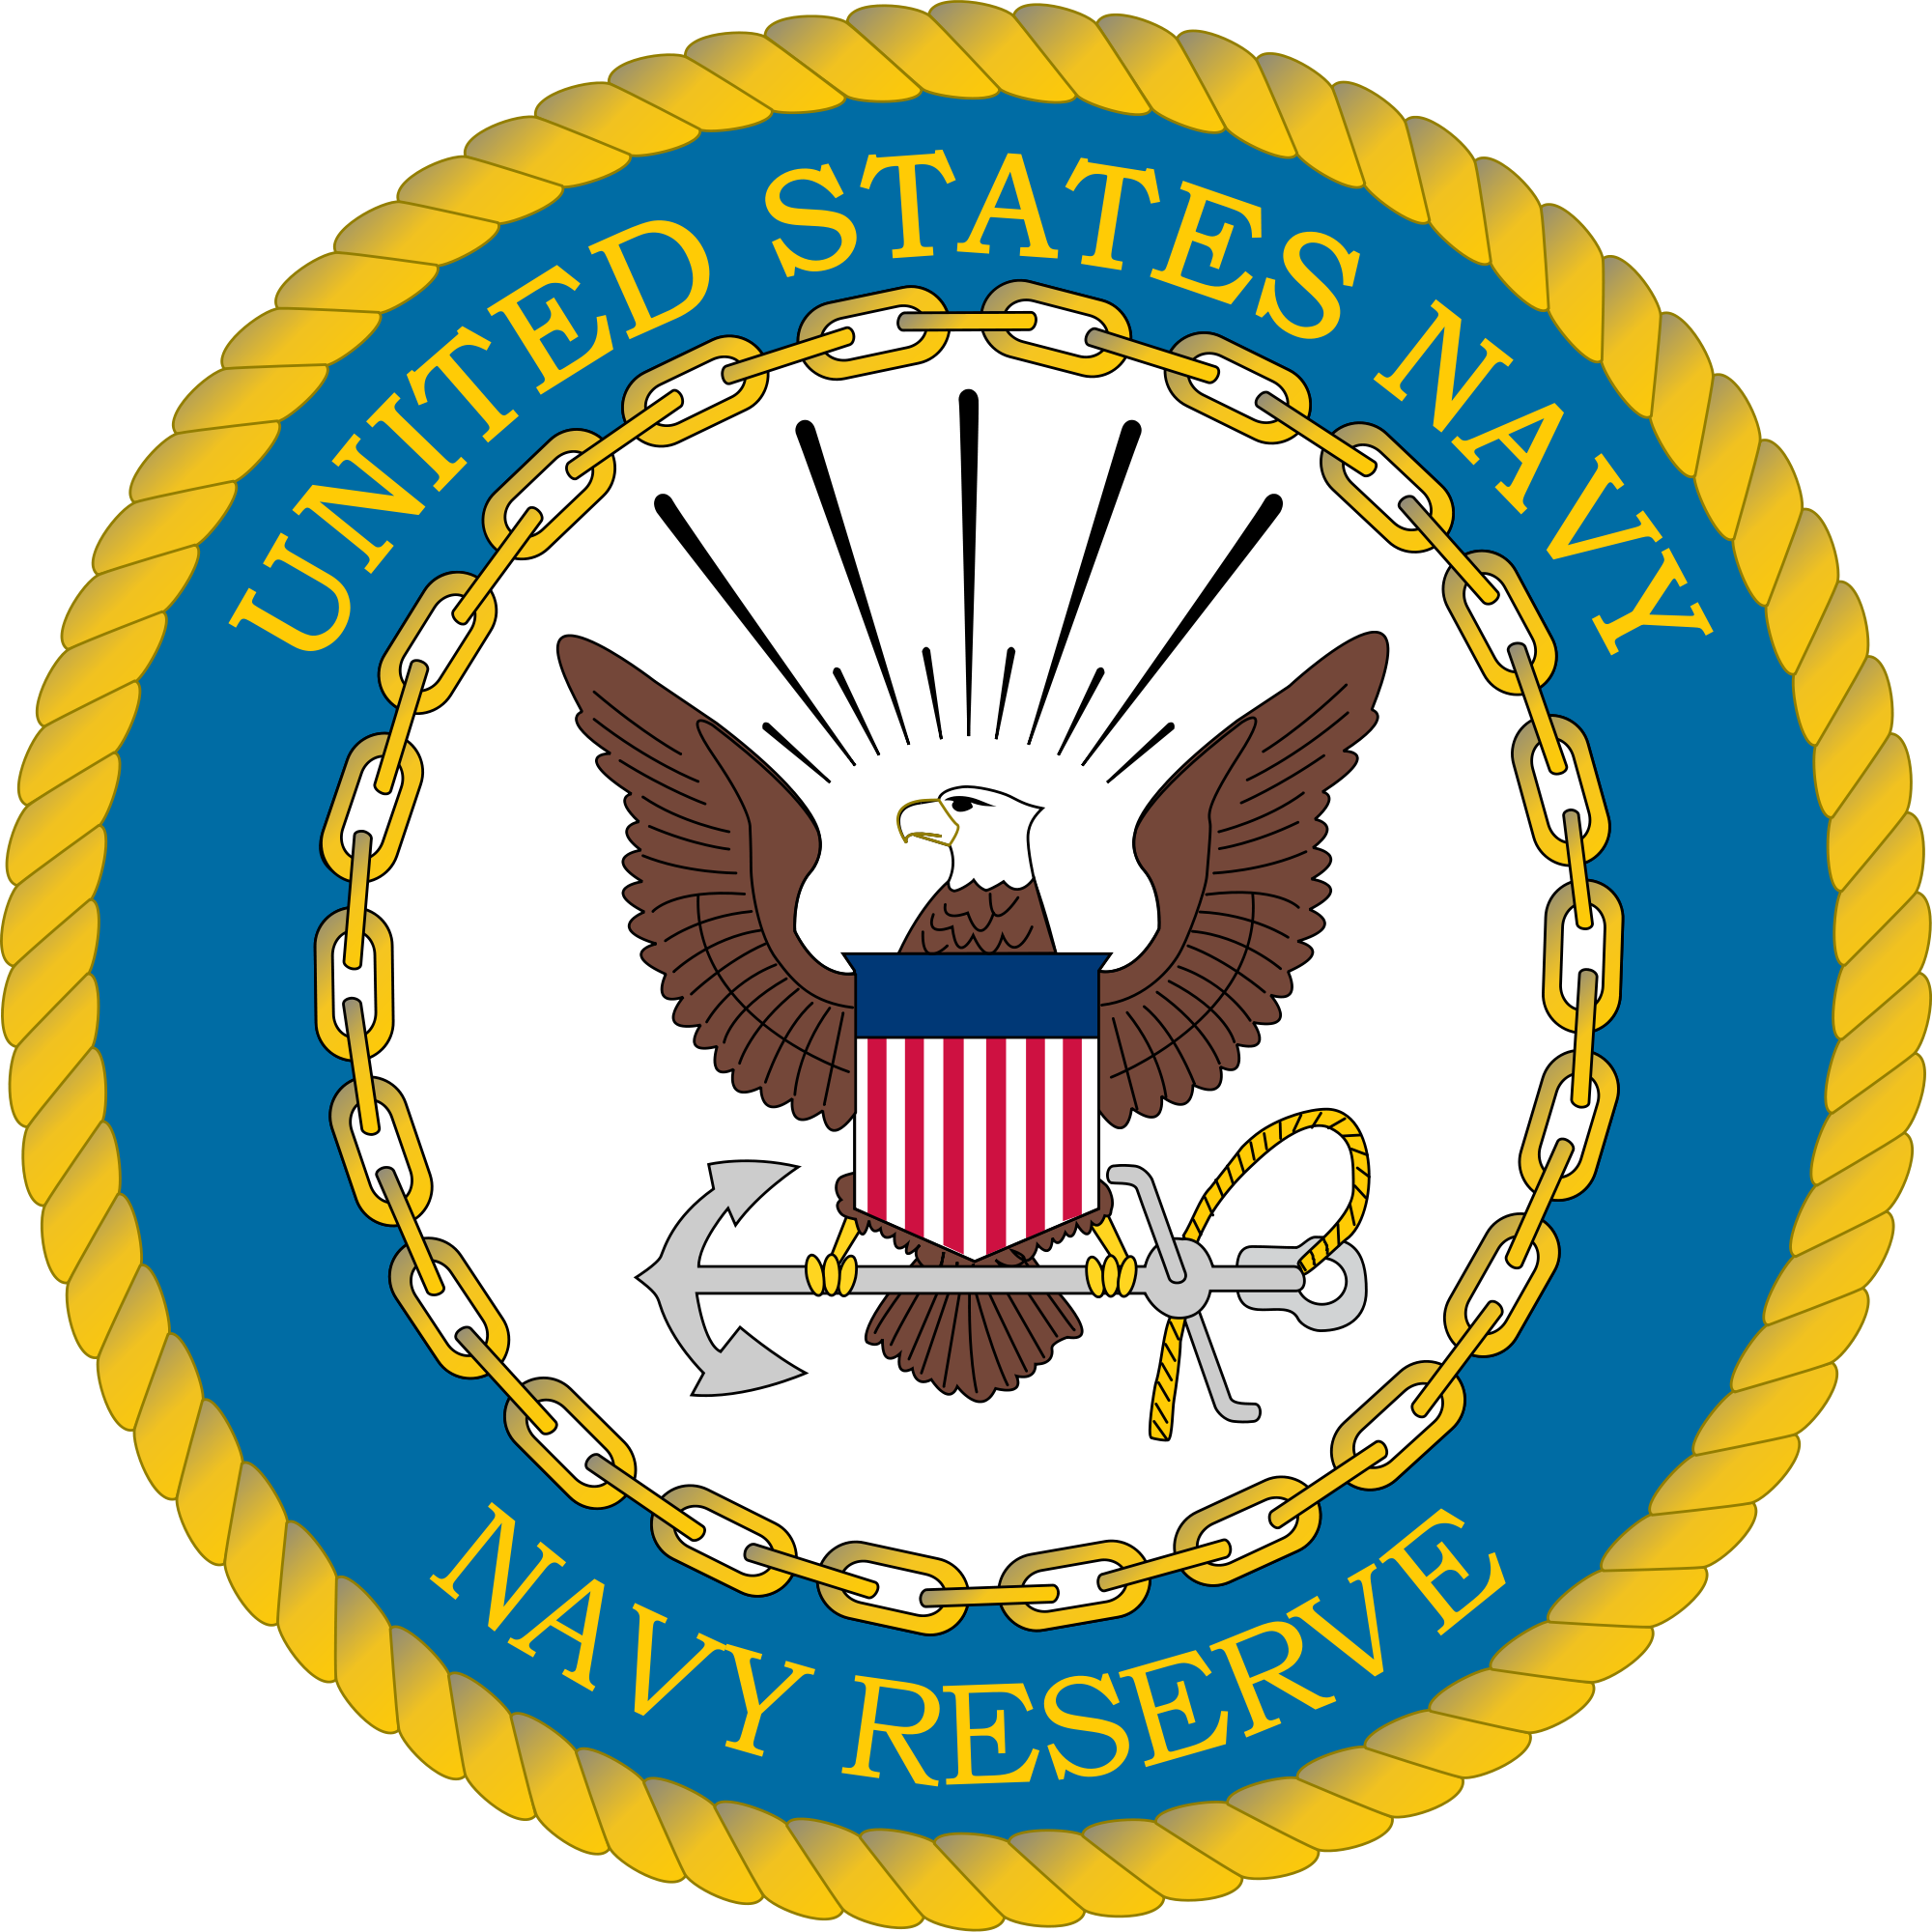 March 3 Marks Us Navy Reserves 100th Anniversary